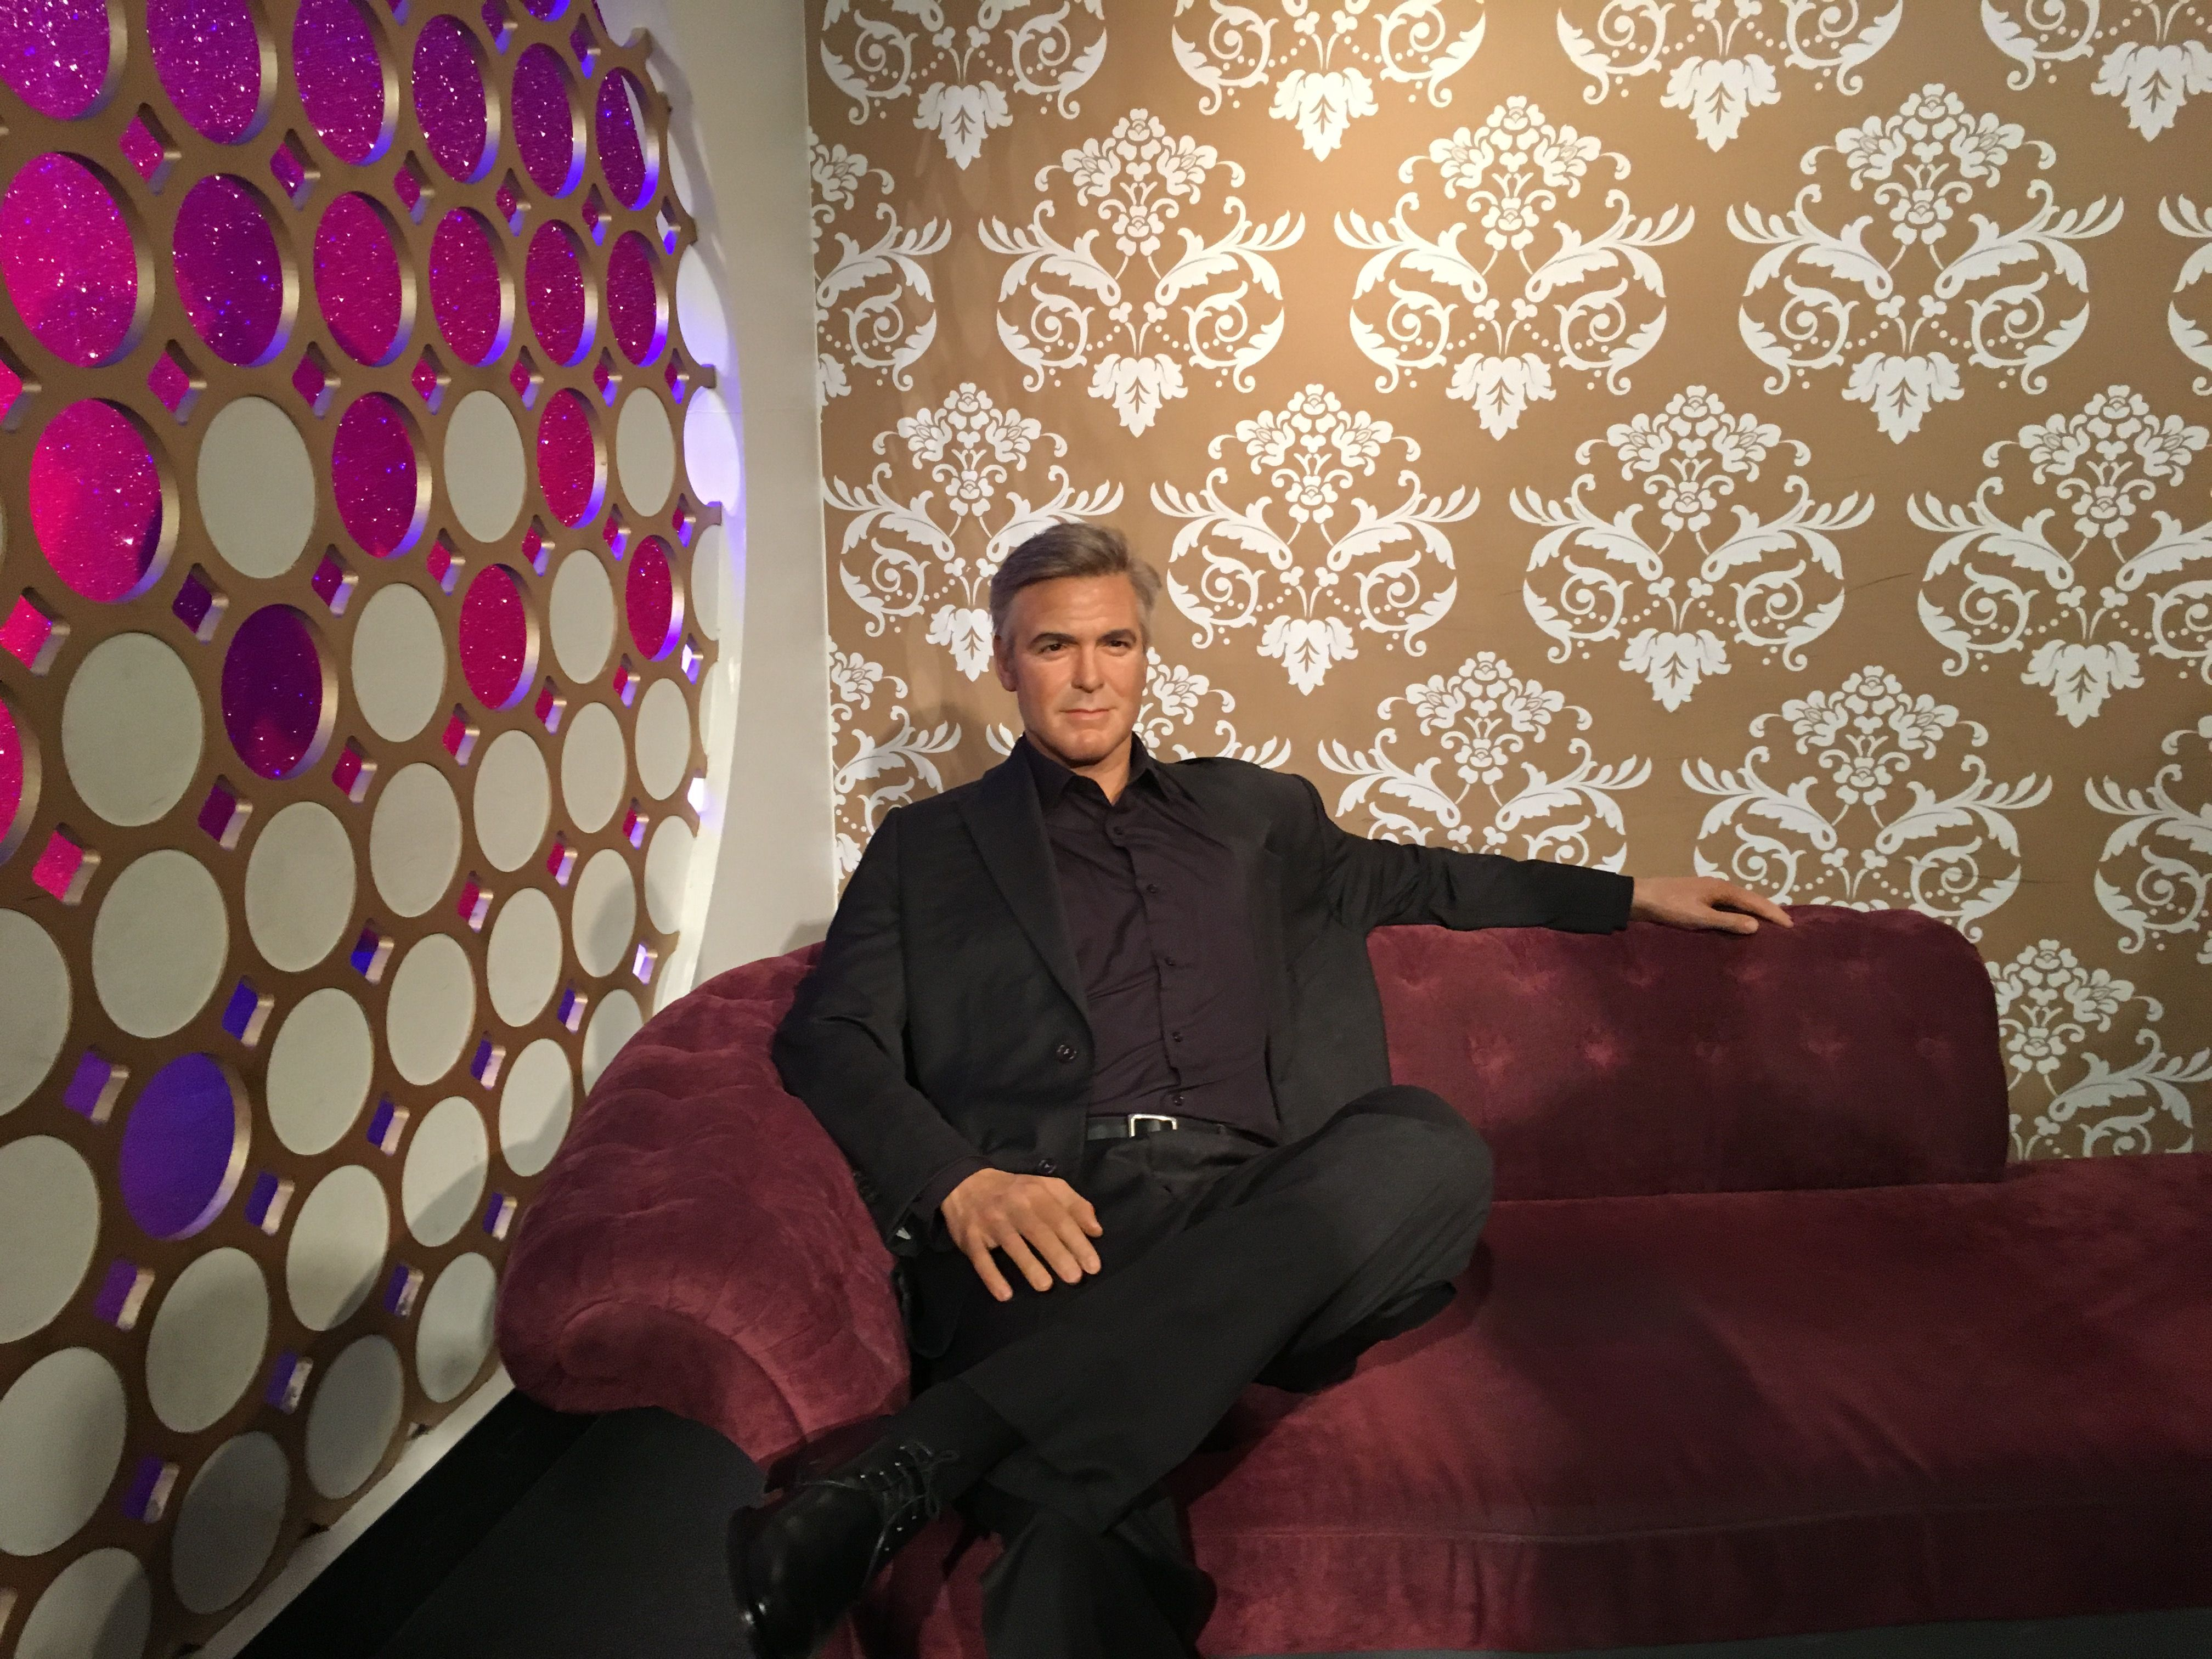 George Clooney at Madame Tussauds London